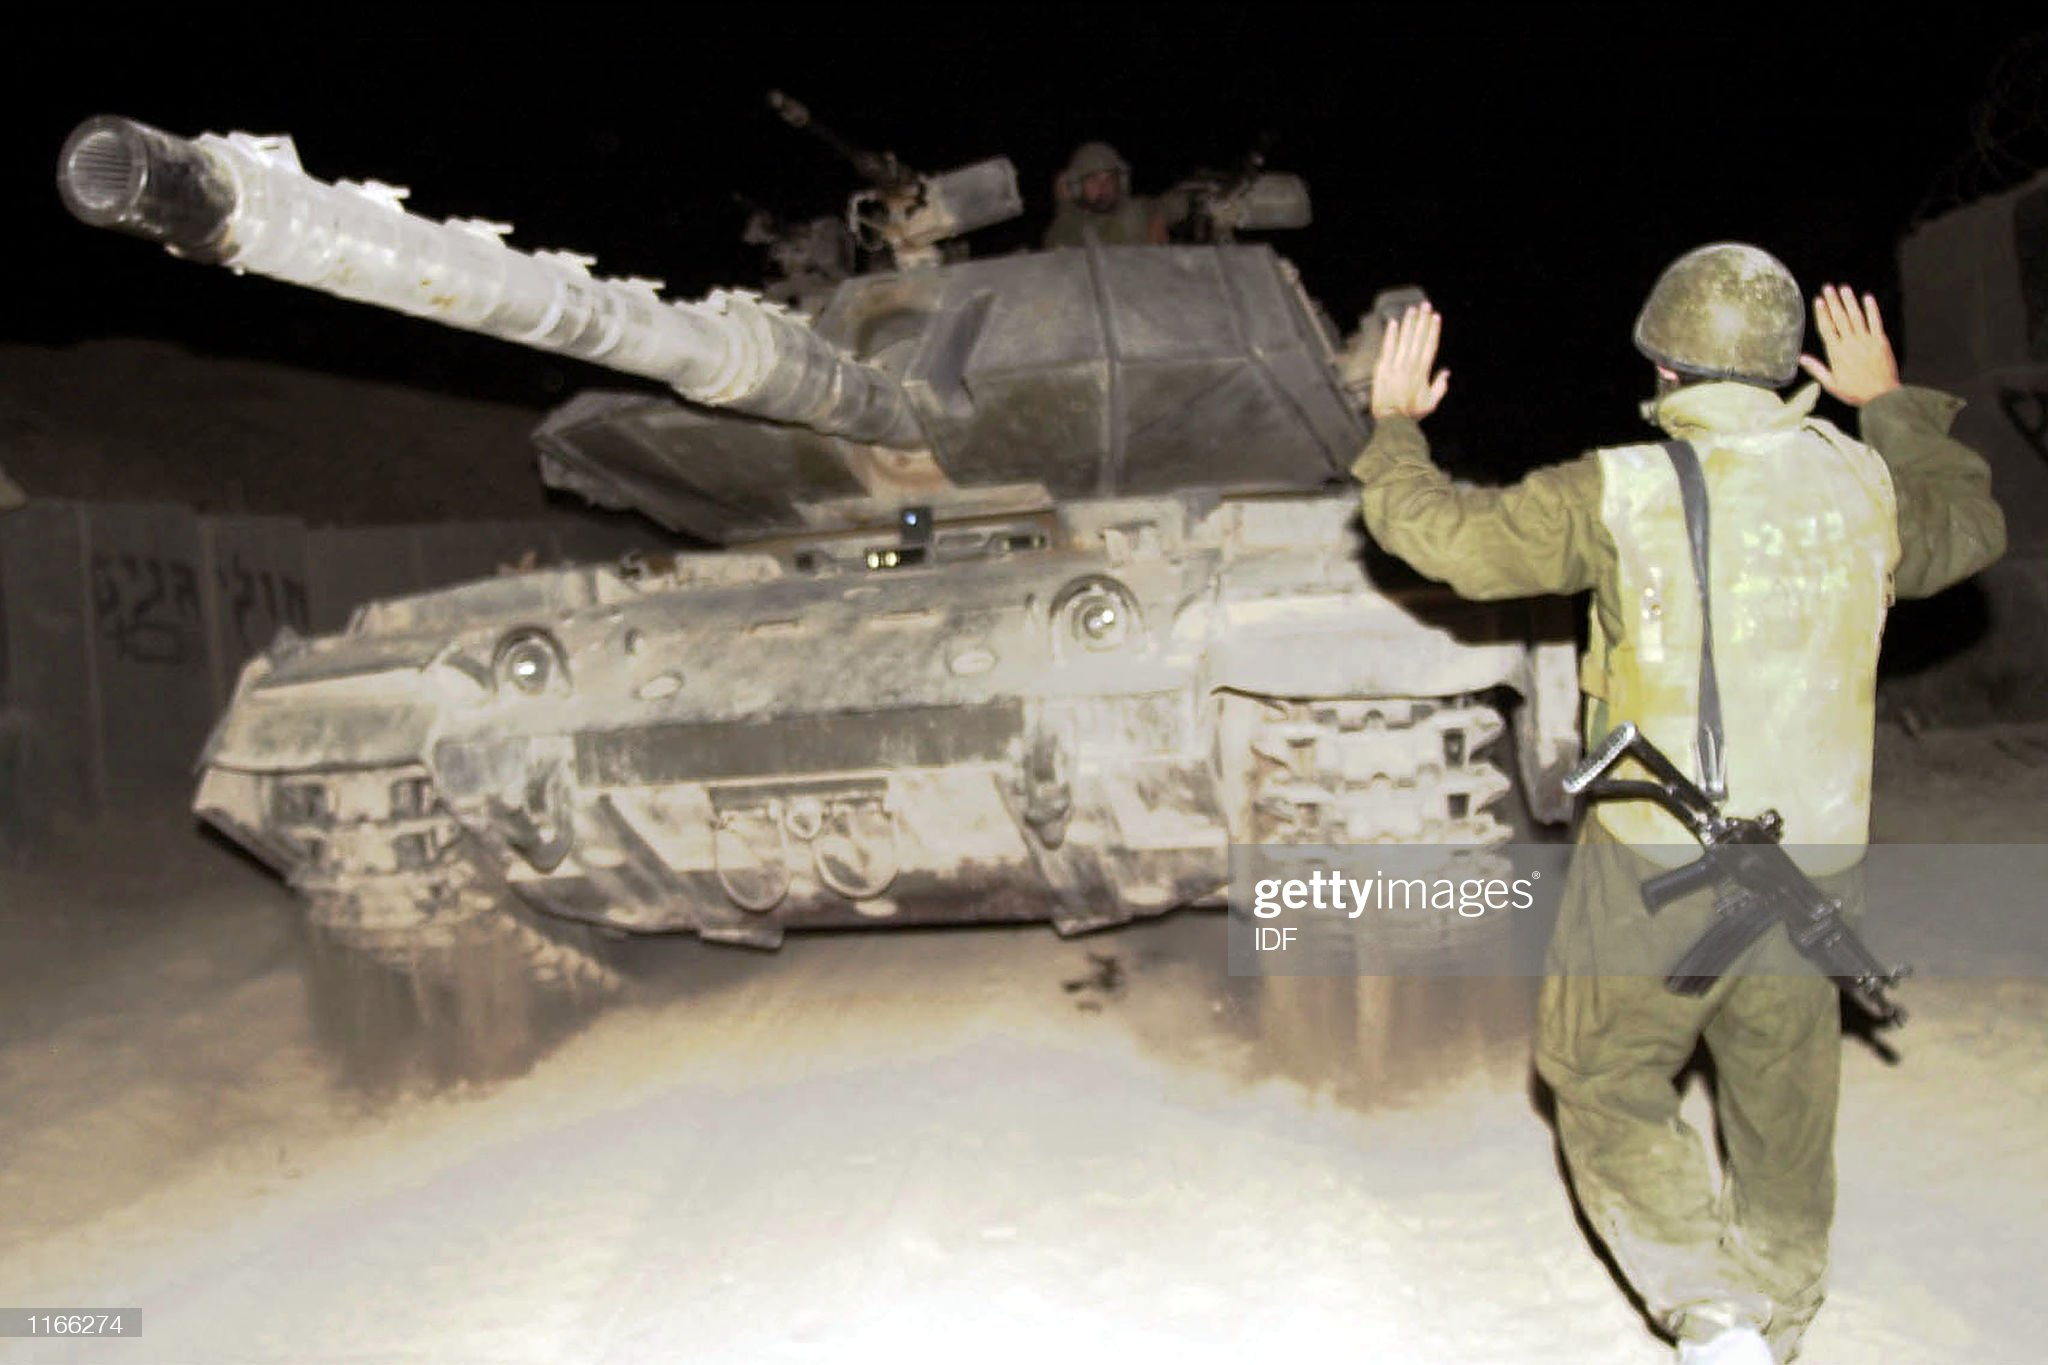 https://media.gettyimages.com/photos/an-israeli-soldier-directs-a-tank-as-it-withdraws-october-2-2001-to-picture-id1166274?s=2048x2048